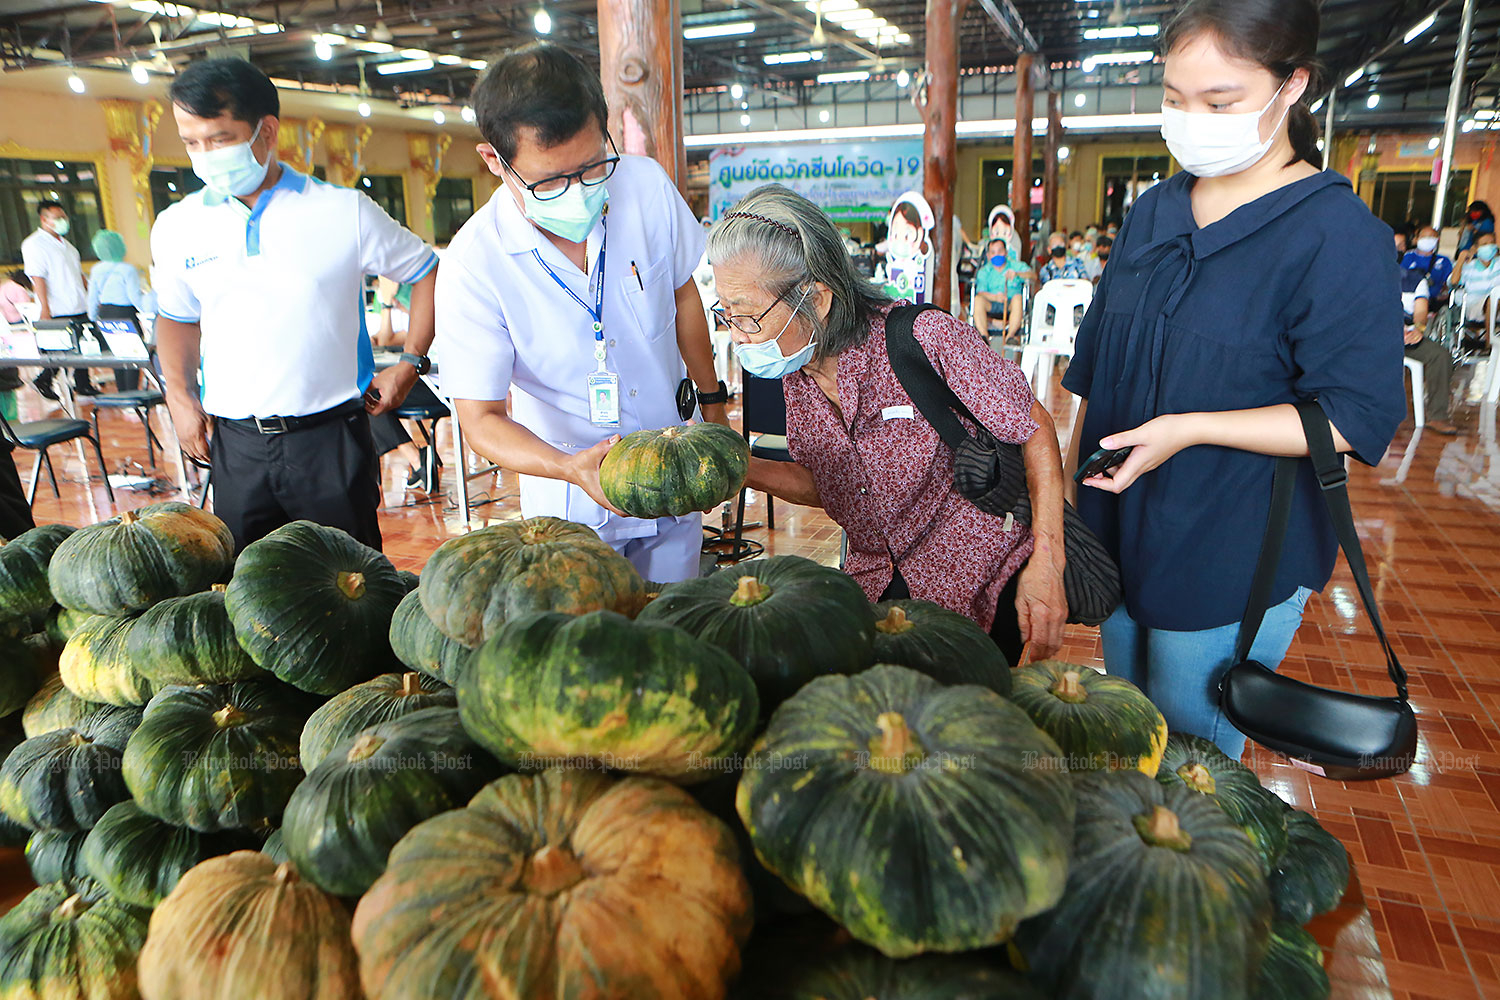 A medical worker selects a pumpkin for a woman after she received a Covid-19 vaccination at Wat Bang Phli Klang in Samut Prakan. The temple abbot has given away free pumpkins to encourage people to have their jabs. (Photo by Somchai Poomlard)